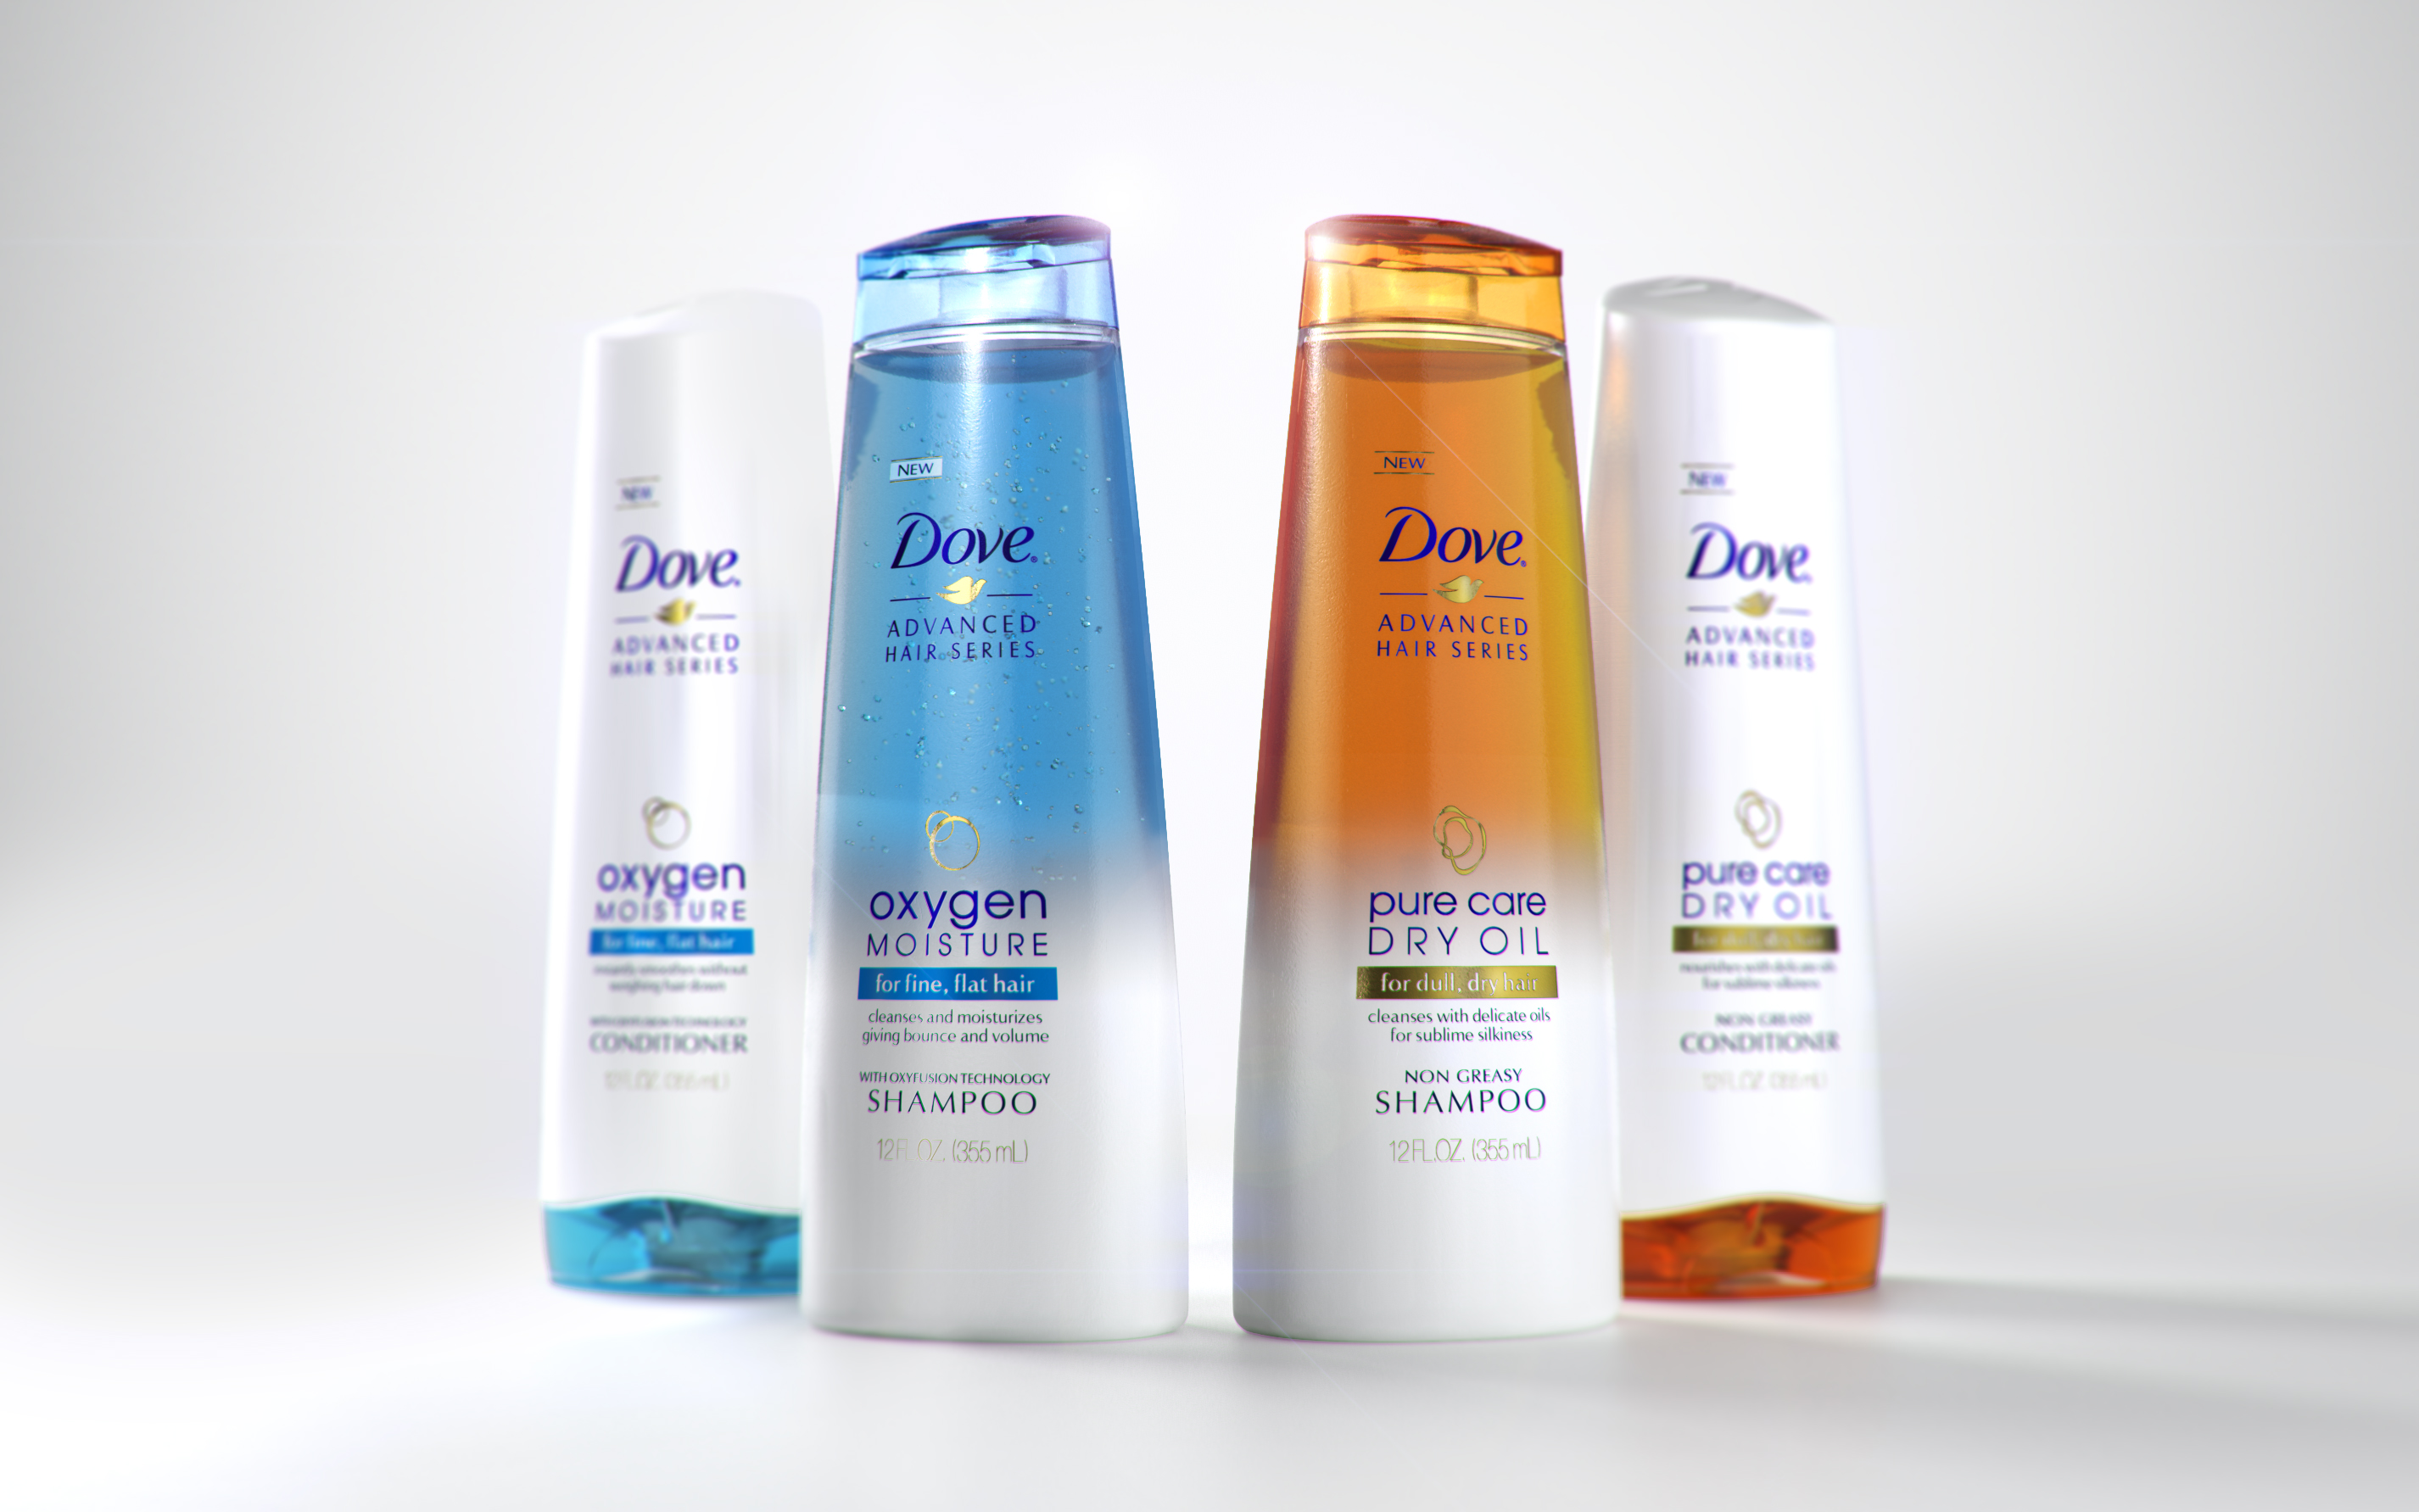 Photo: New Dove's premium hair care range in the US